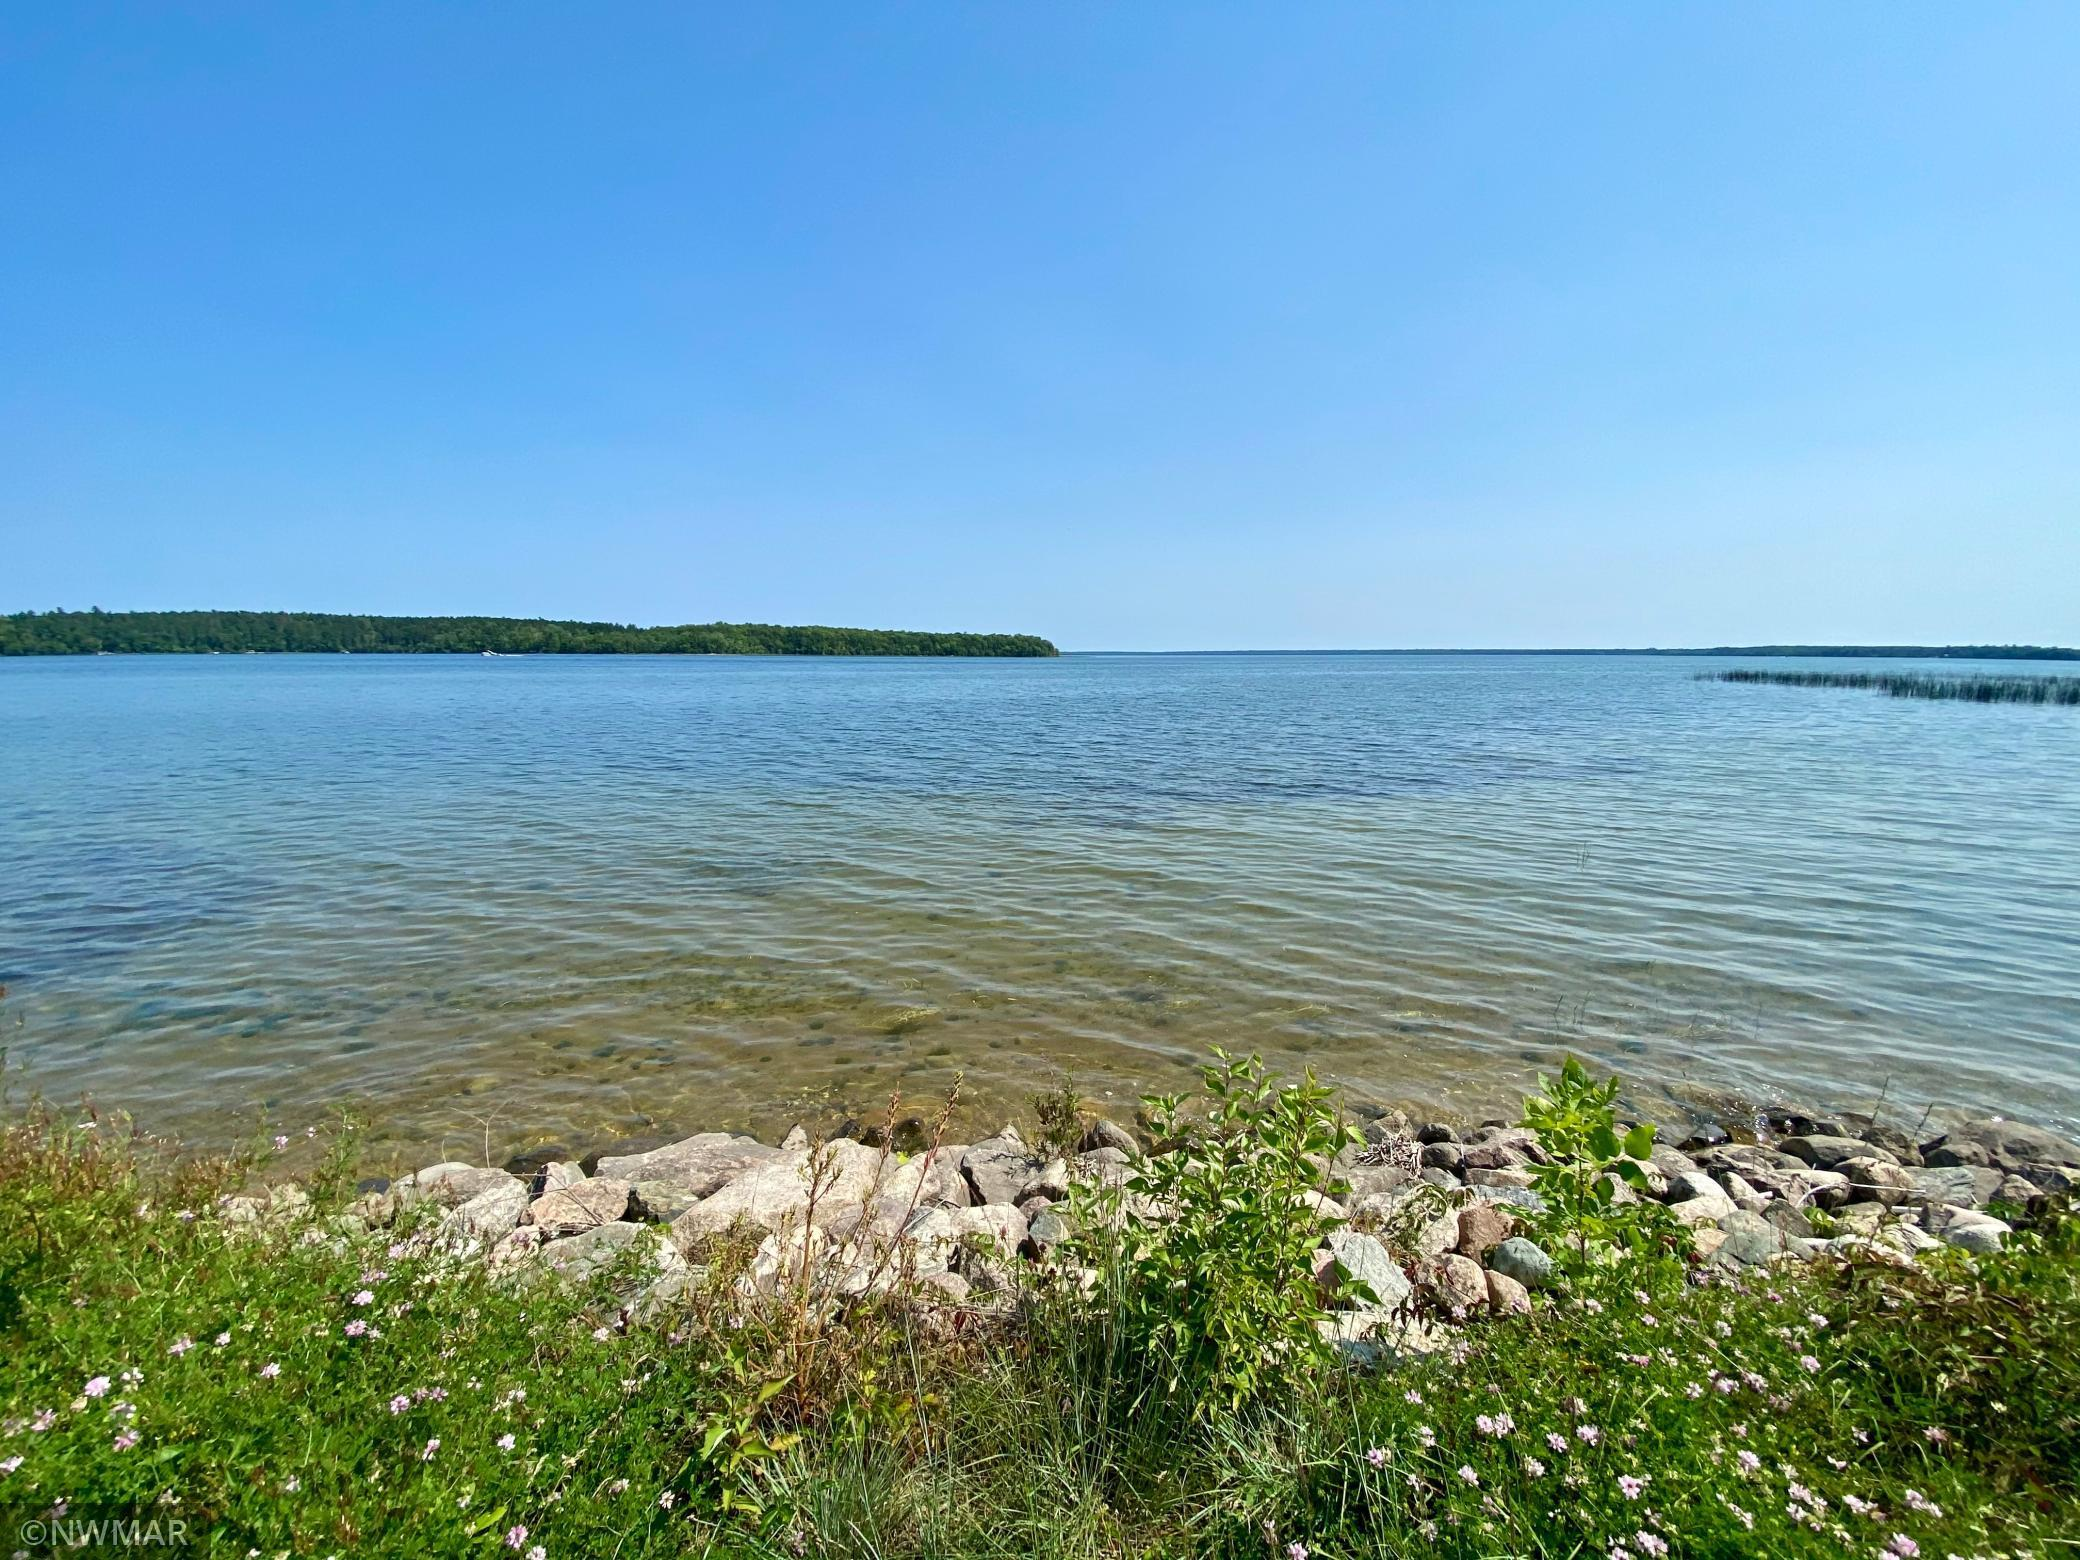 Don't miss this rare opportunity to build your dream home on Cass Lake's pristine shores! Enjoy maintenance-free lake living at its finest, which includes ownership in Tom's Harbor Association, unobscured lake views, and wooded privacy on the north side of the property. Lake lot includes exclusive rights to build a two-story structure, a premium covered boat slip, and common amenities including a brand new pool, lodge, fish cleaning house, and more! Set up a time to check out this property before it's gone.